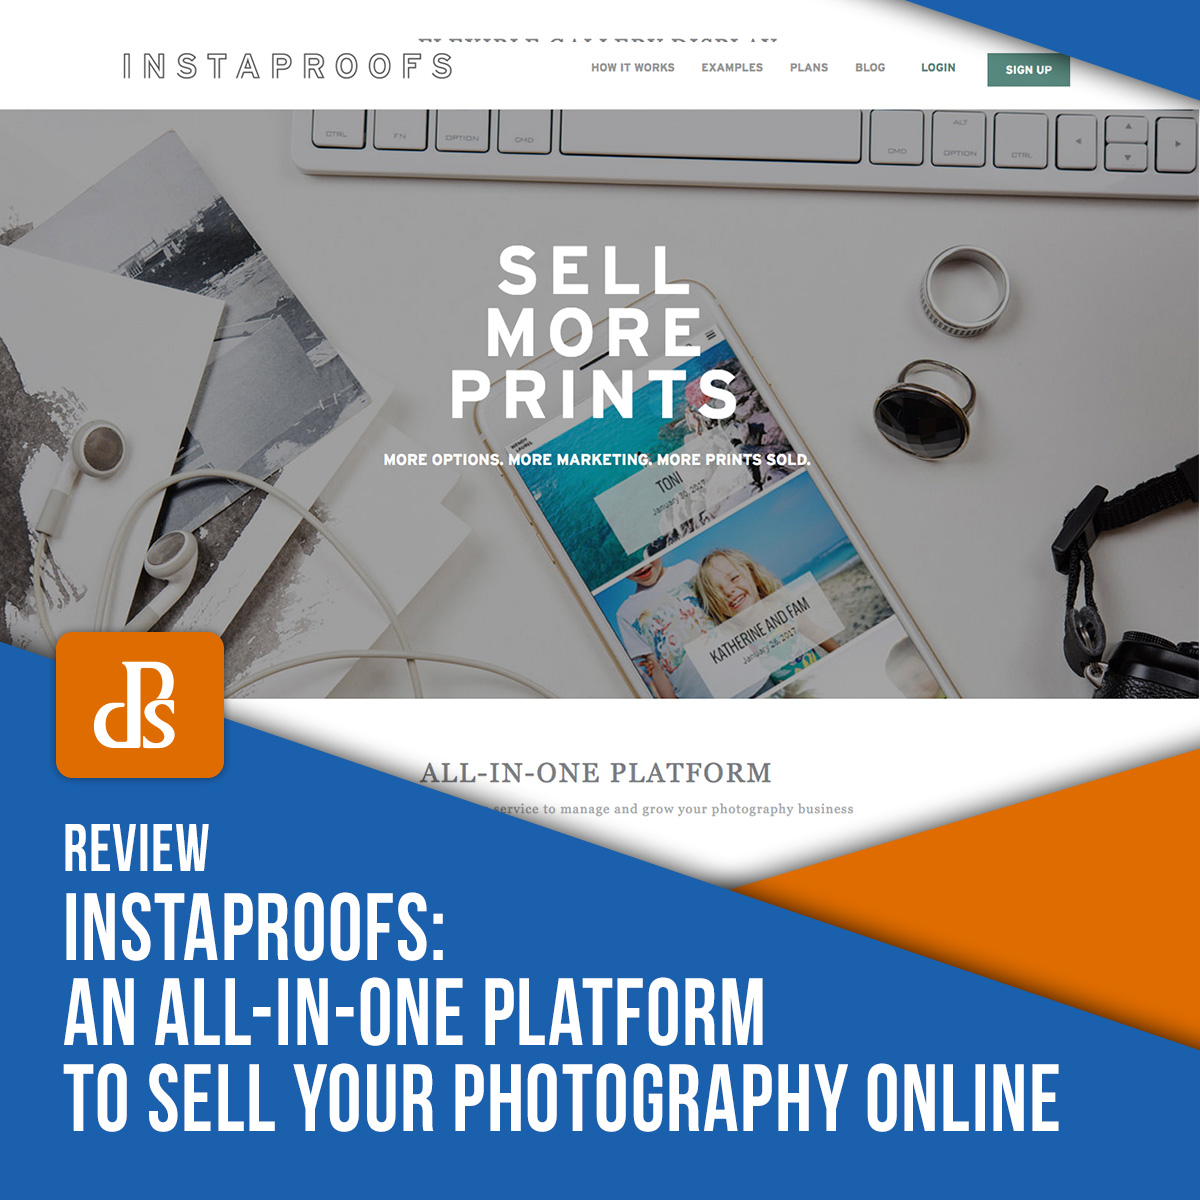 https://i2.wp.com/digital-photography-school.com/wp-content/uploads/2020/04/dps-instaproofs-review.jpg?ssl=1